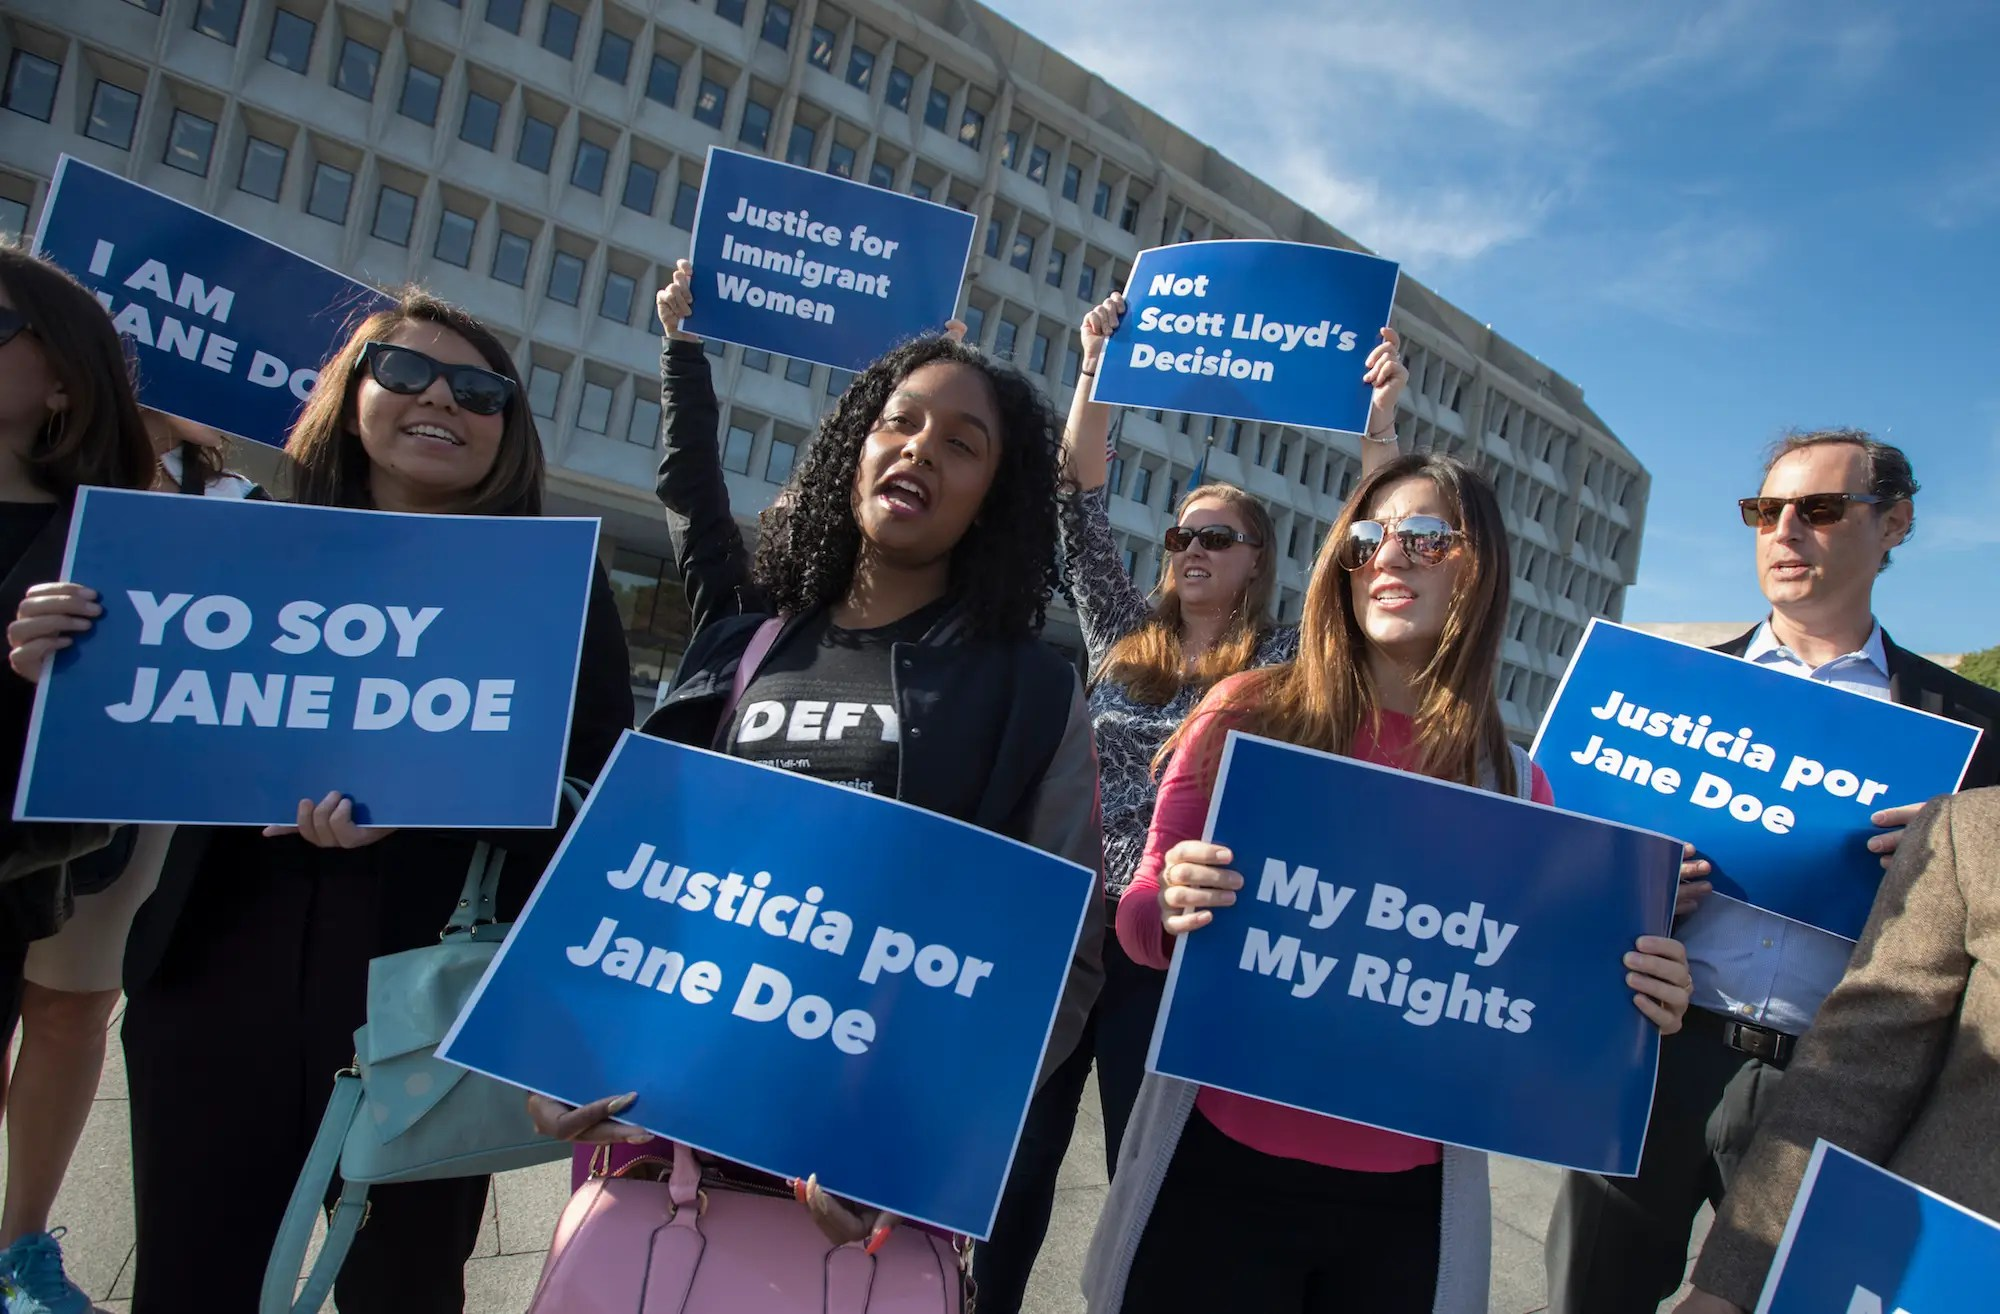 jane doe abortion